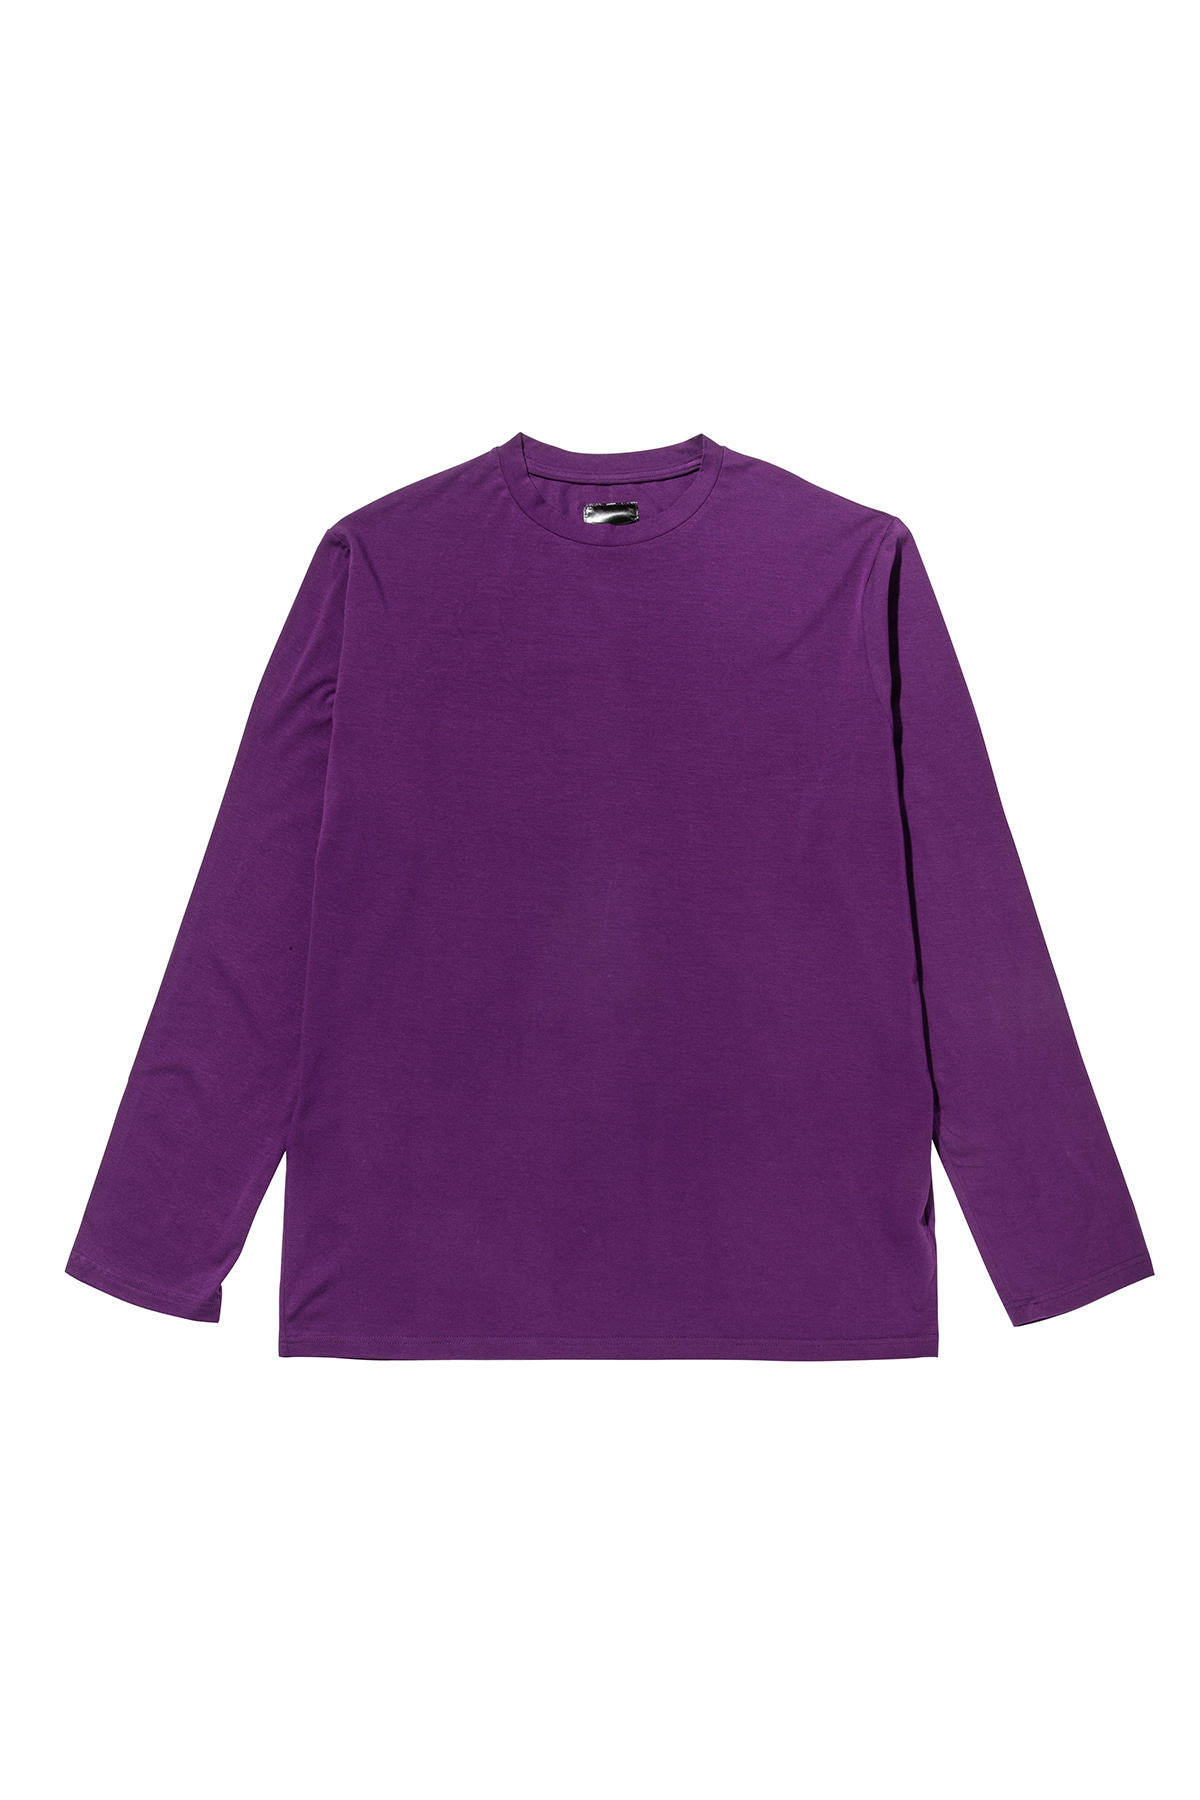 Basic long sleeve T-shirt (purple) #jp29